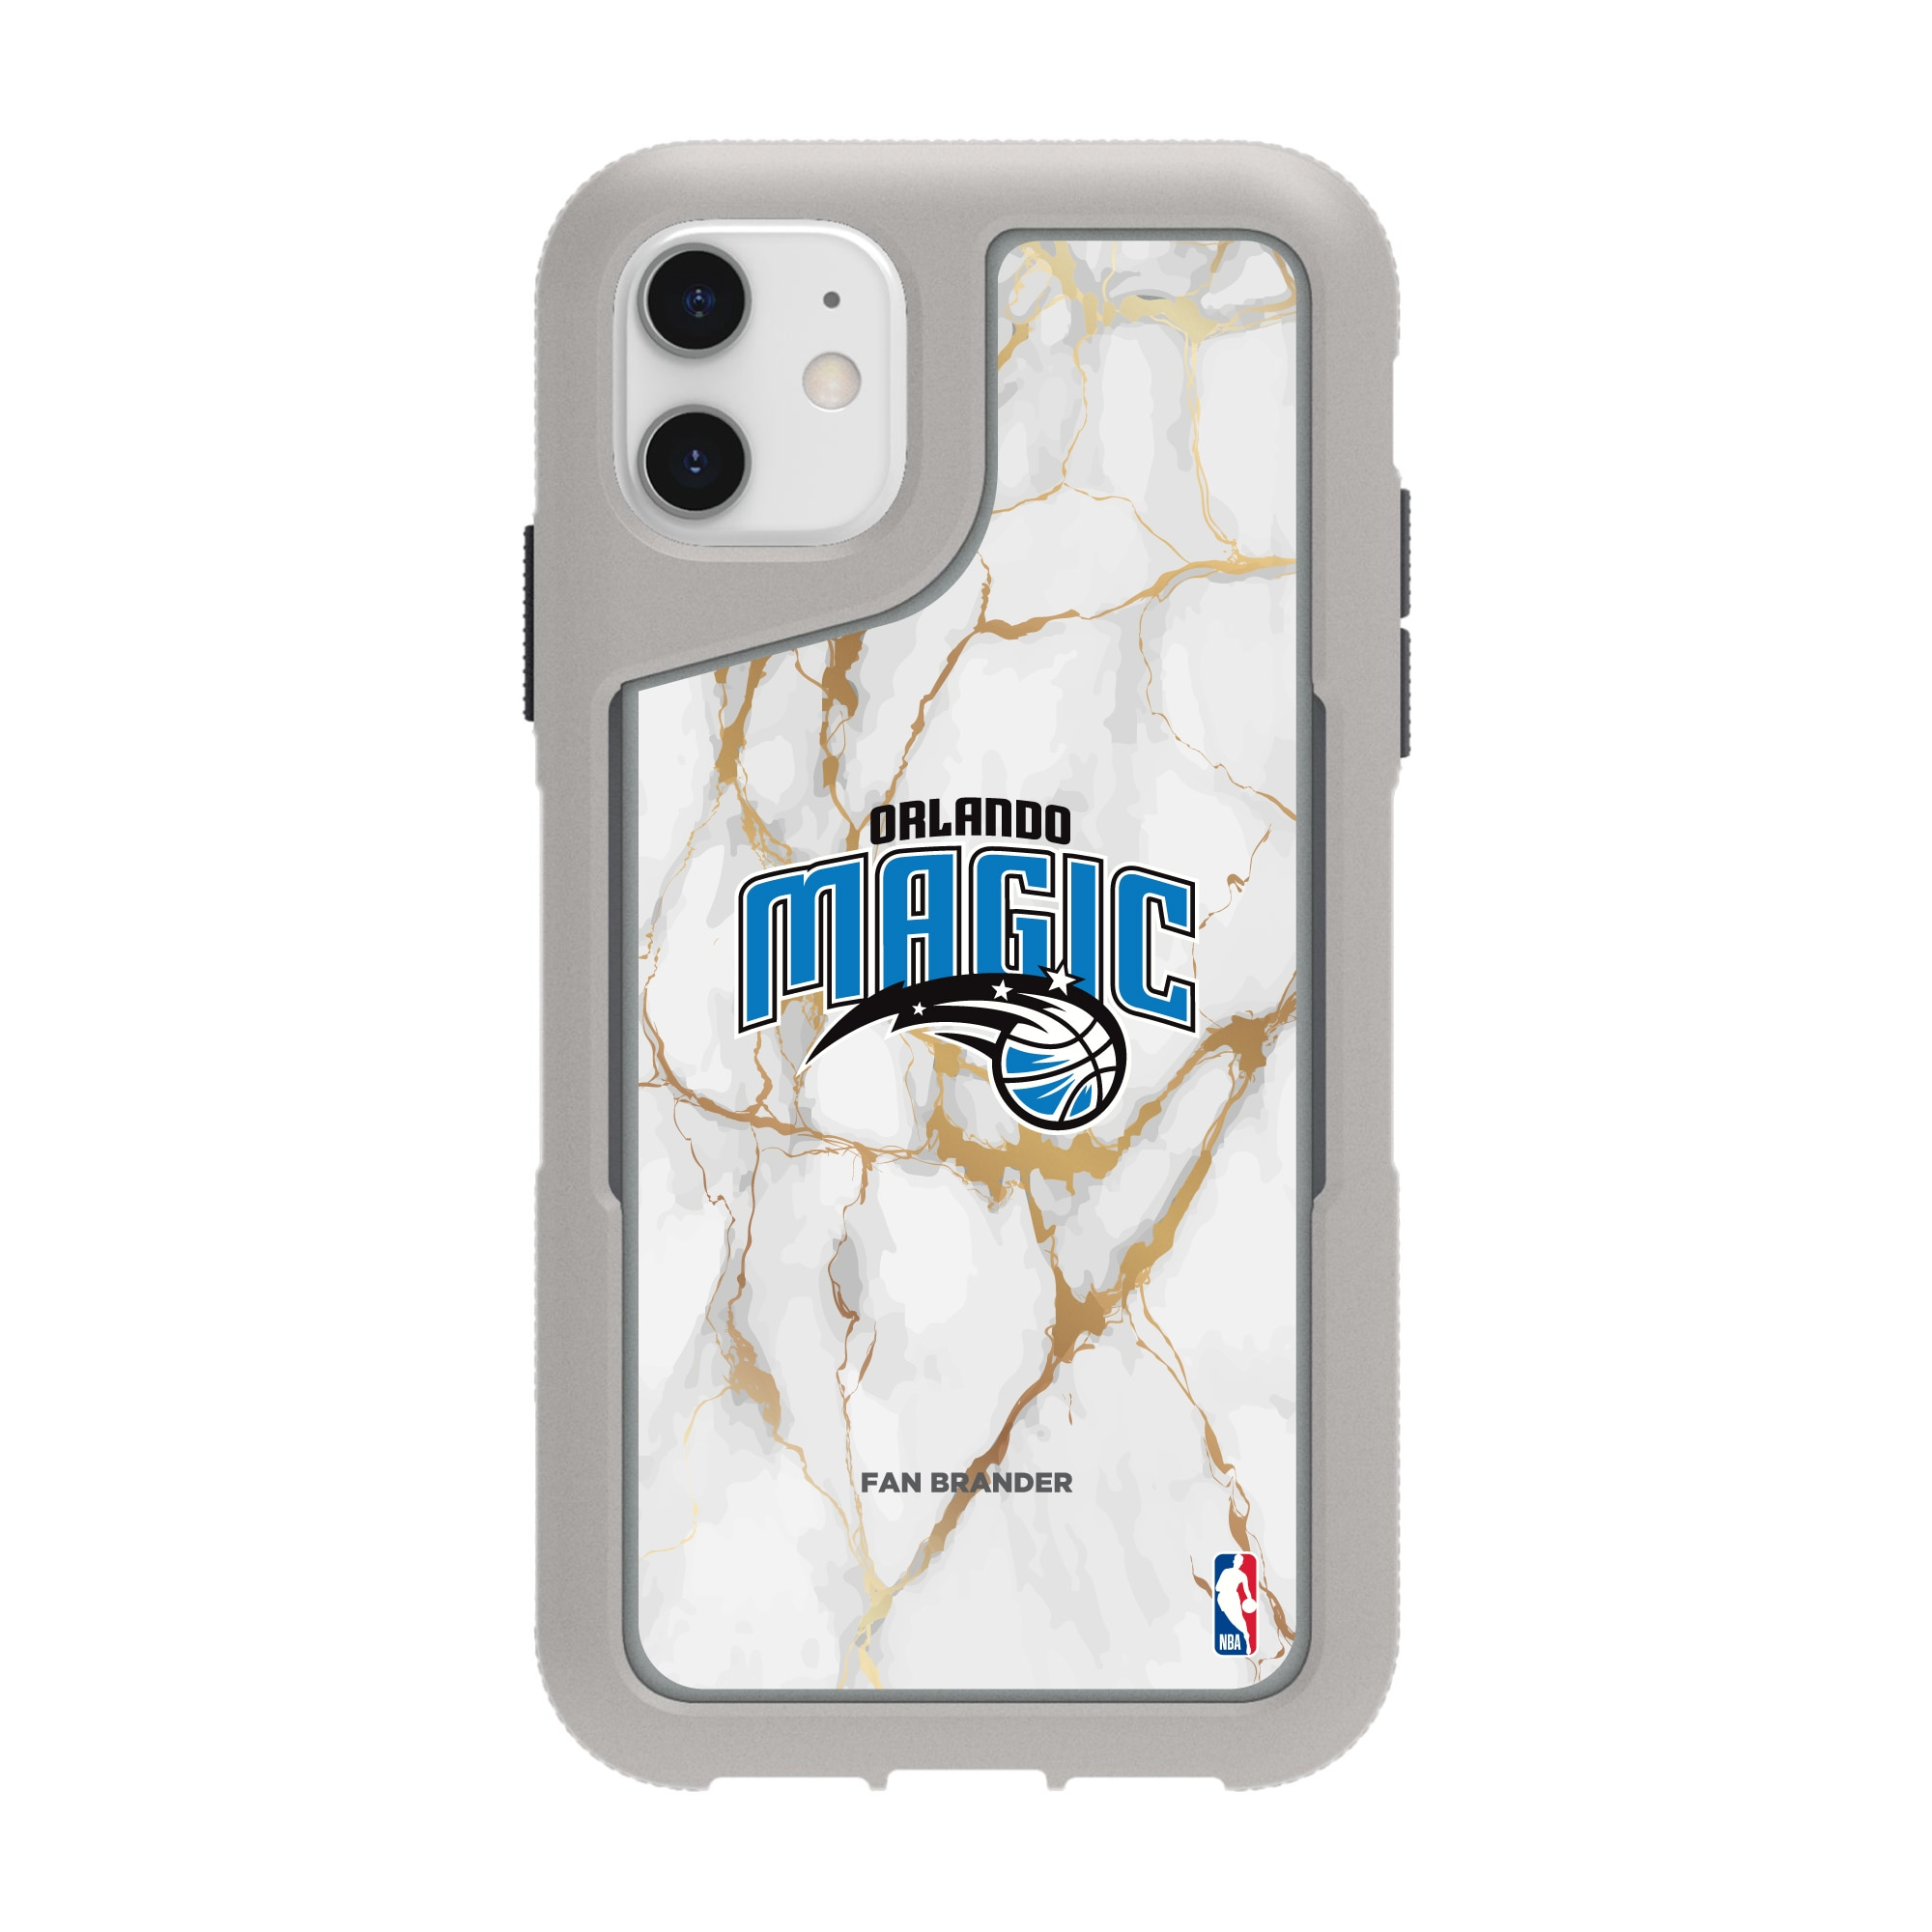 Orlando Magic Griffin Survivor Endurance Marble iPhone Case - Gray